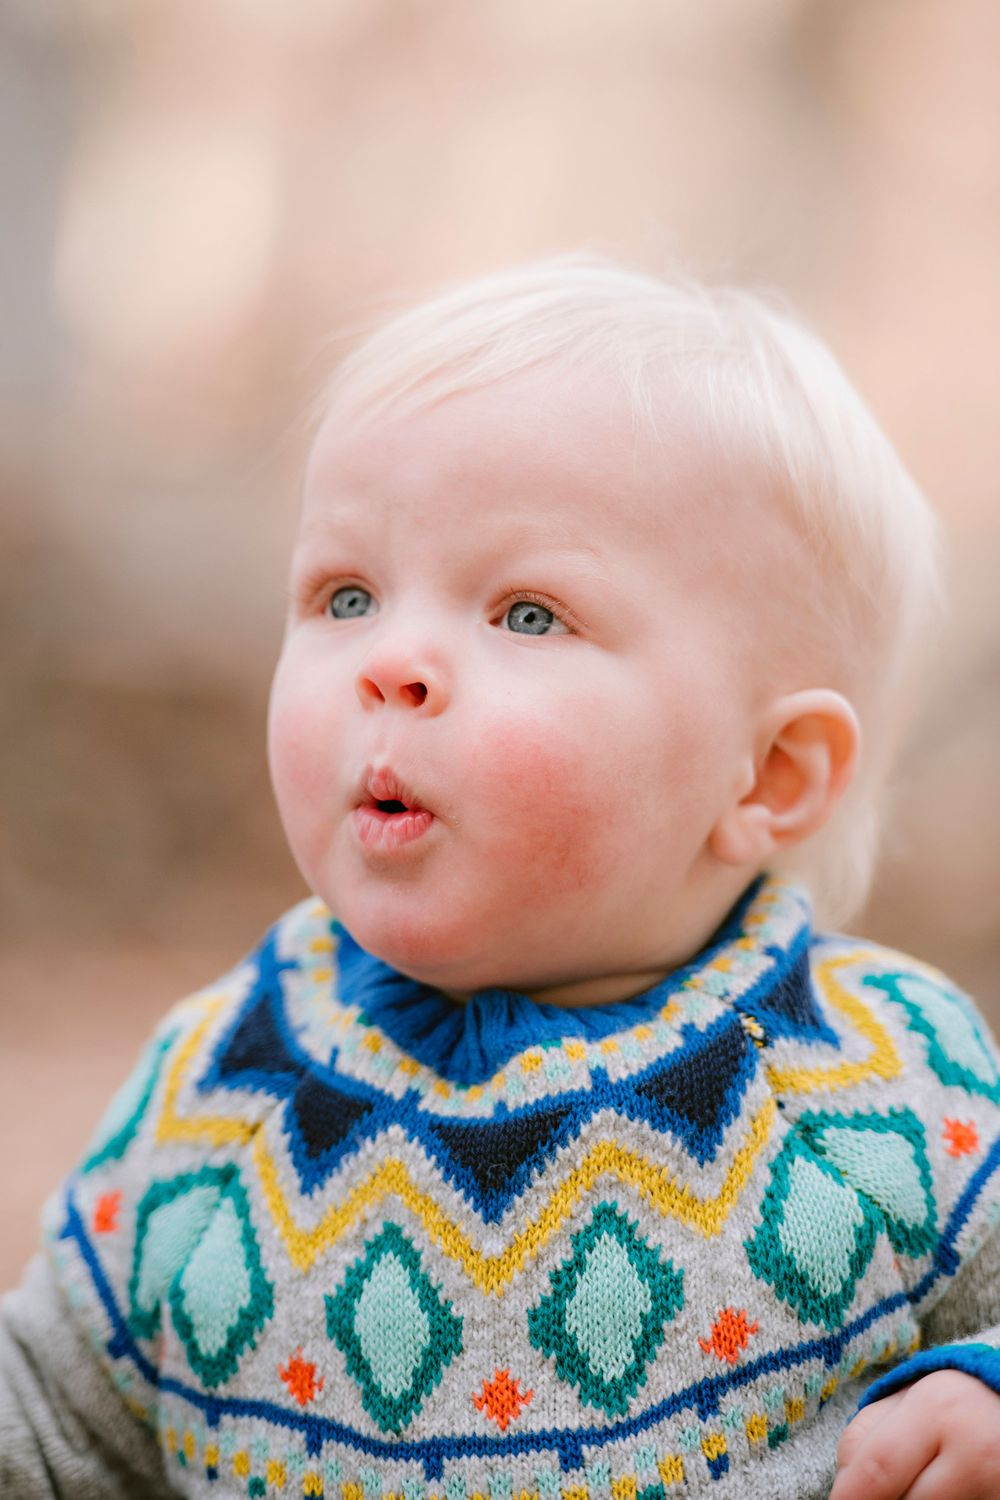 Cute toddler in a sweater makes a funny face